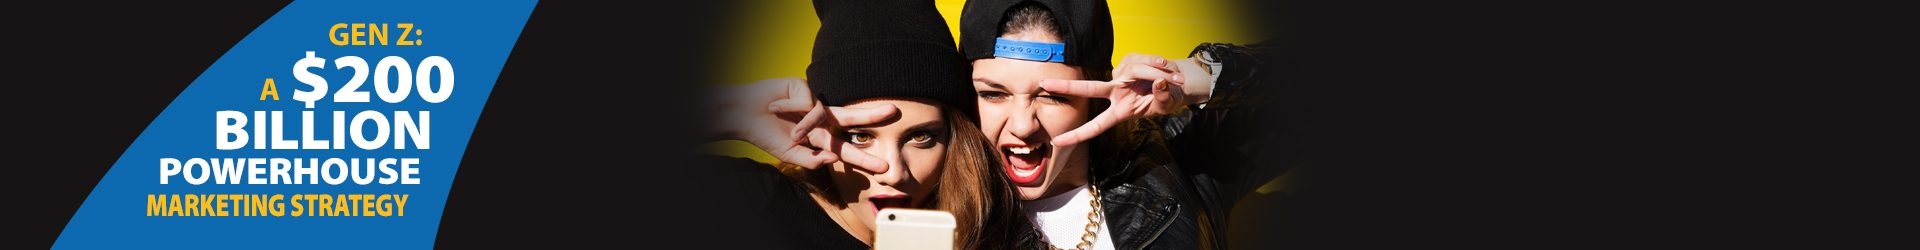 Marketing Strategy for Gen Z. A $200 Billion Powerhouse